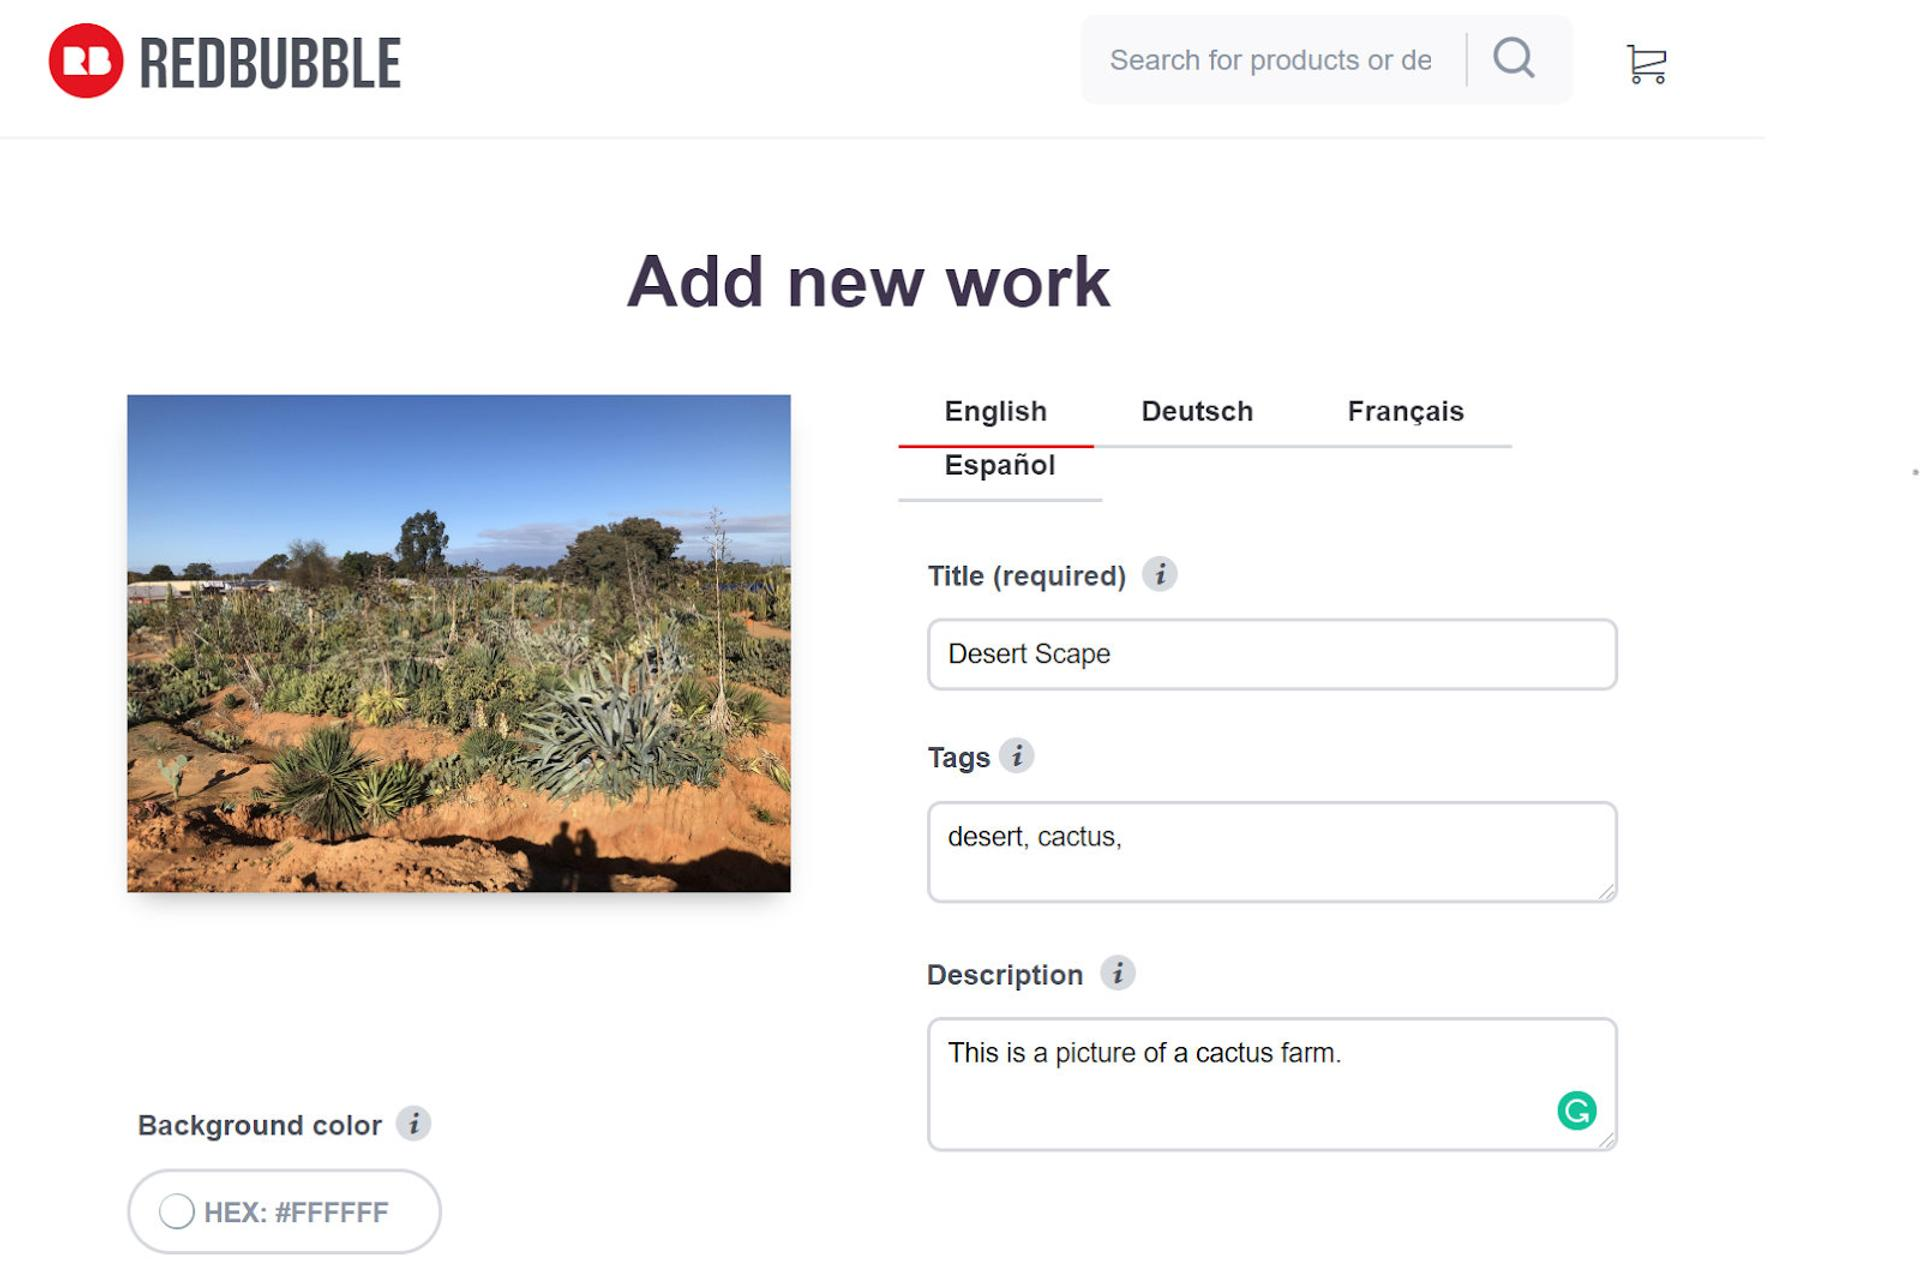 Redbubble Product Editor